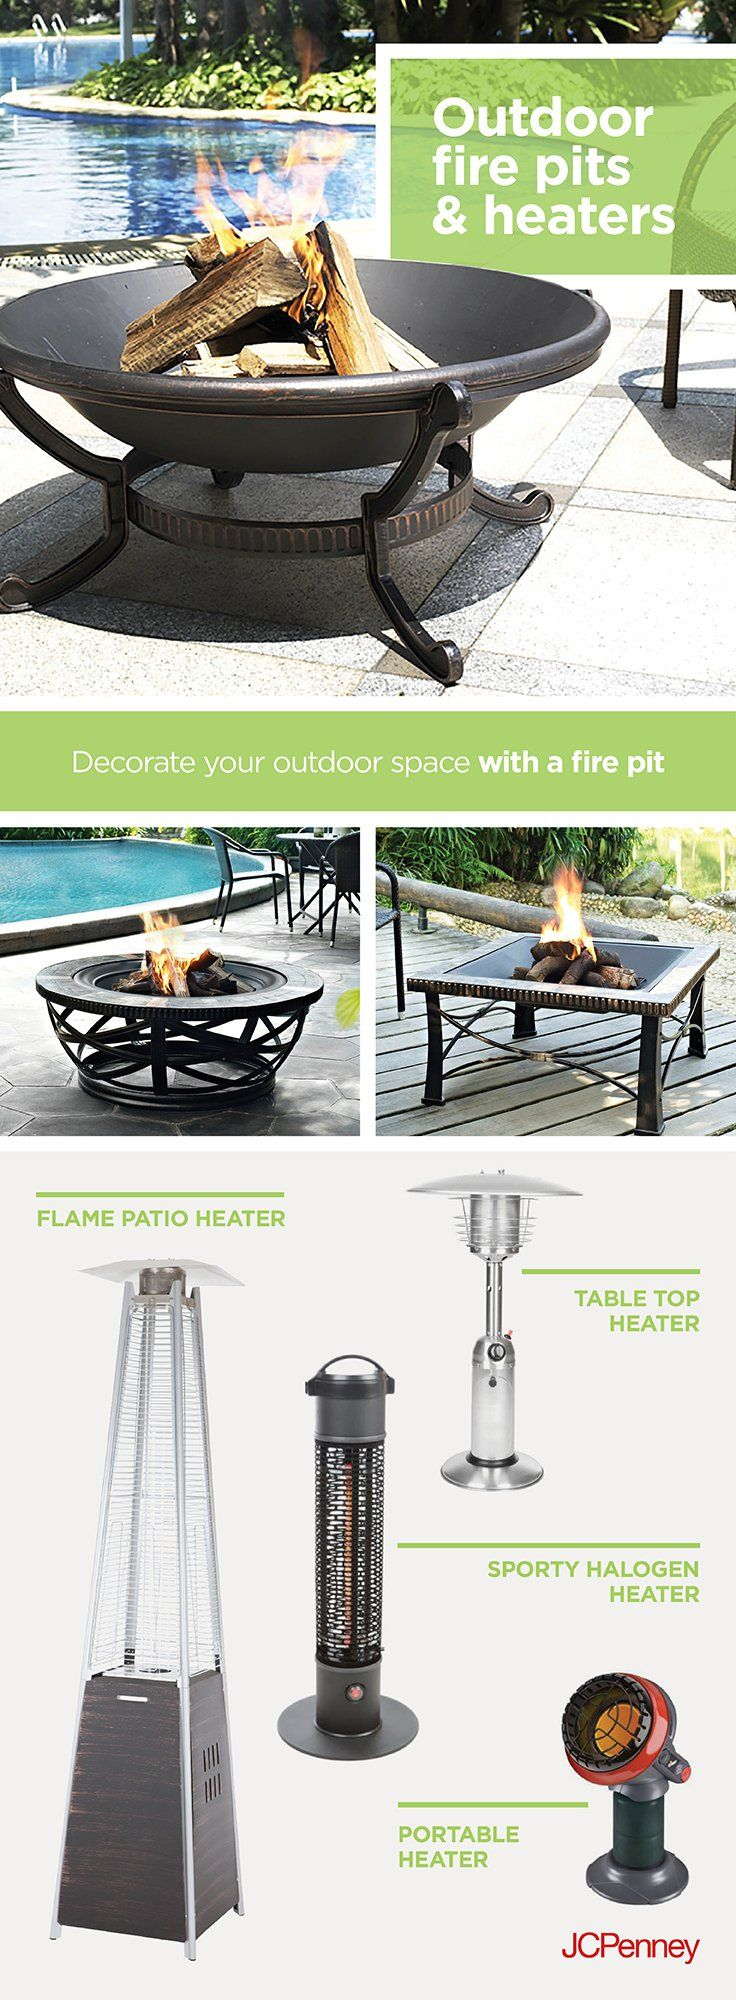 Make your outdoor living space a little more comfortable. A backyard fire pit encircled by Adirondack chairs sets the laid-back mood while keeping a fire safely contained. Go for a stone fire pit for a rustic look. Or try a cement fire pit for a more modern feel. Entertaining in your backyard? Try warming the space with outdoor heaters. With options such as hanging patio heaters and floor heaters, there's a patio heater at JCPenney that's perfect for your outdoor space.